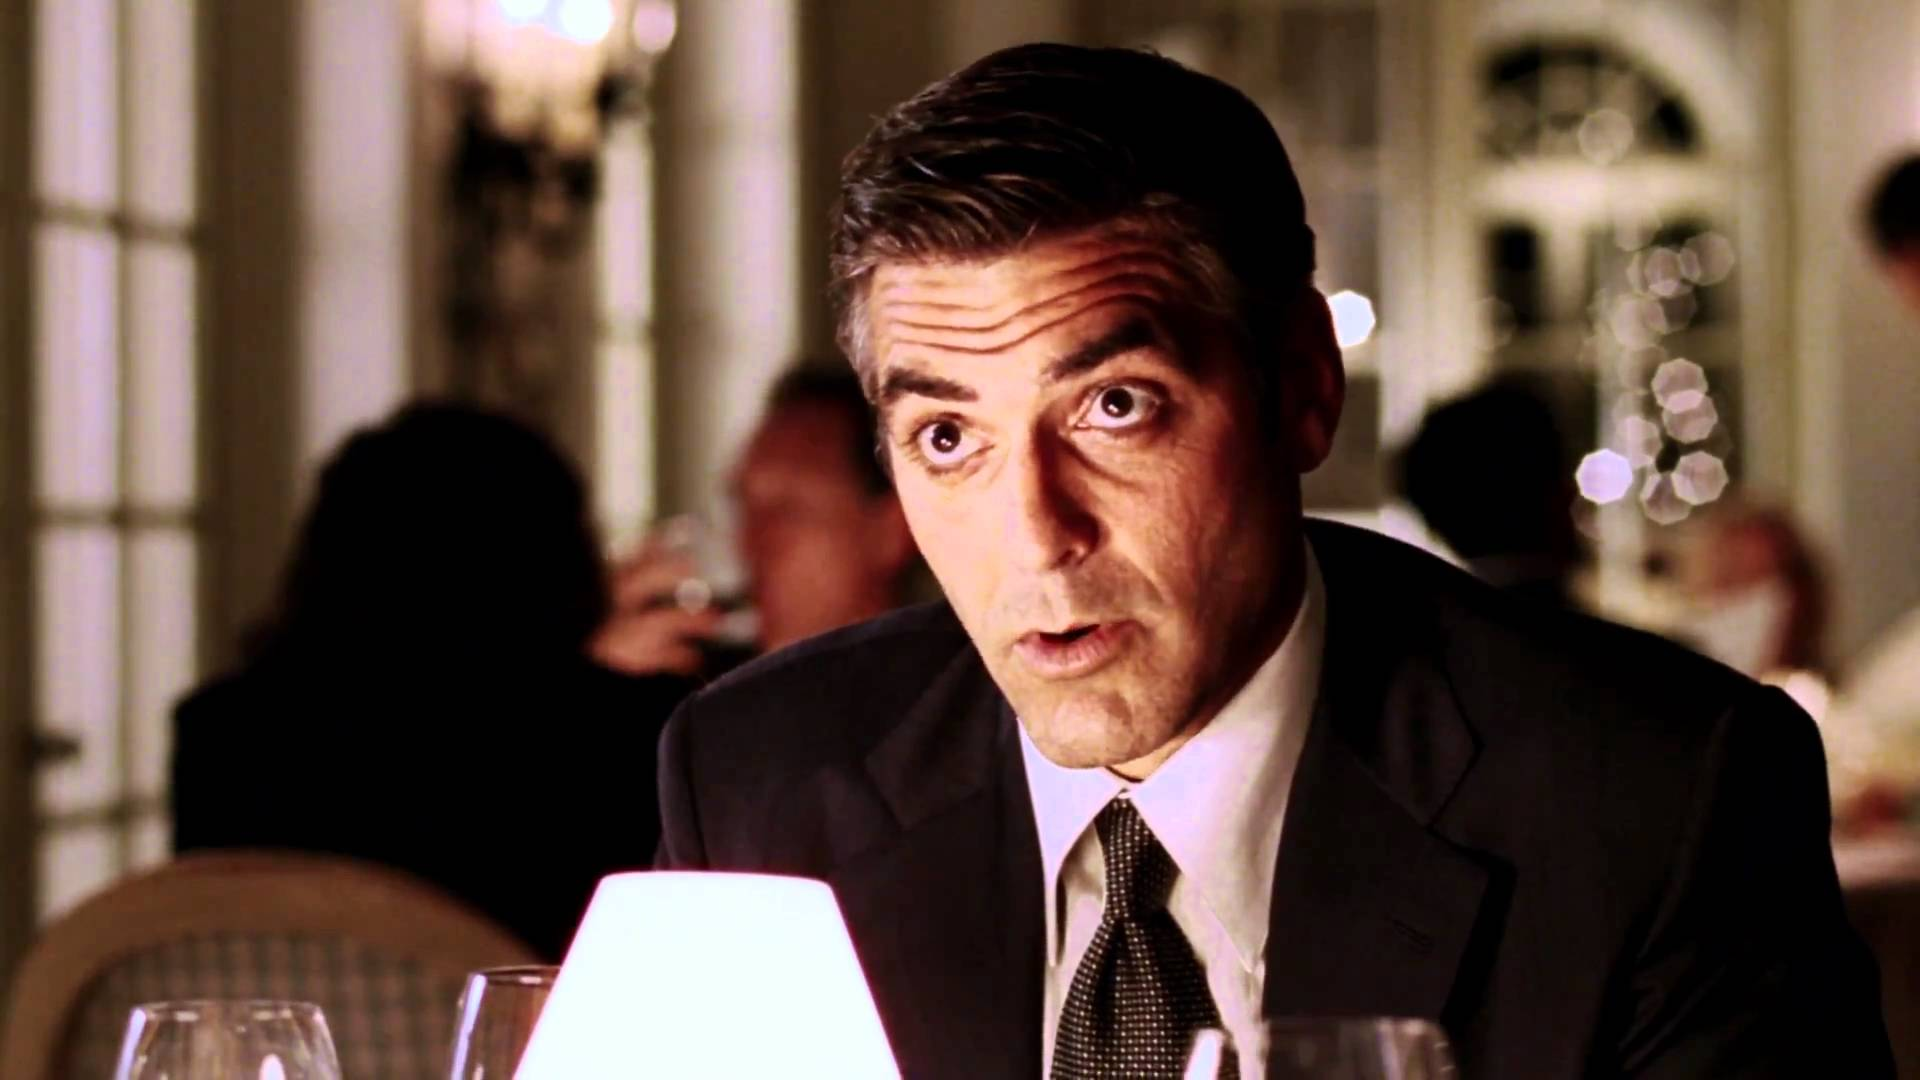 Images of Intolerable Cruelty | 1920x1080